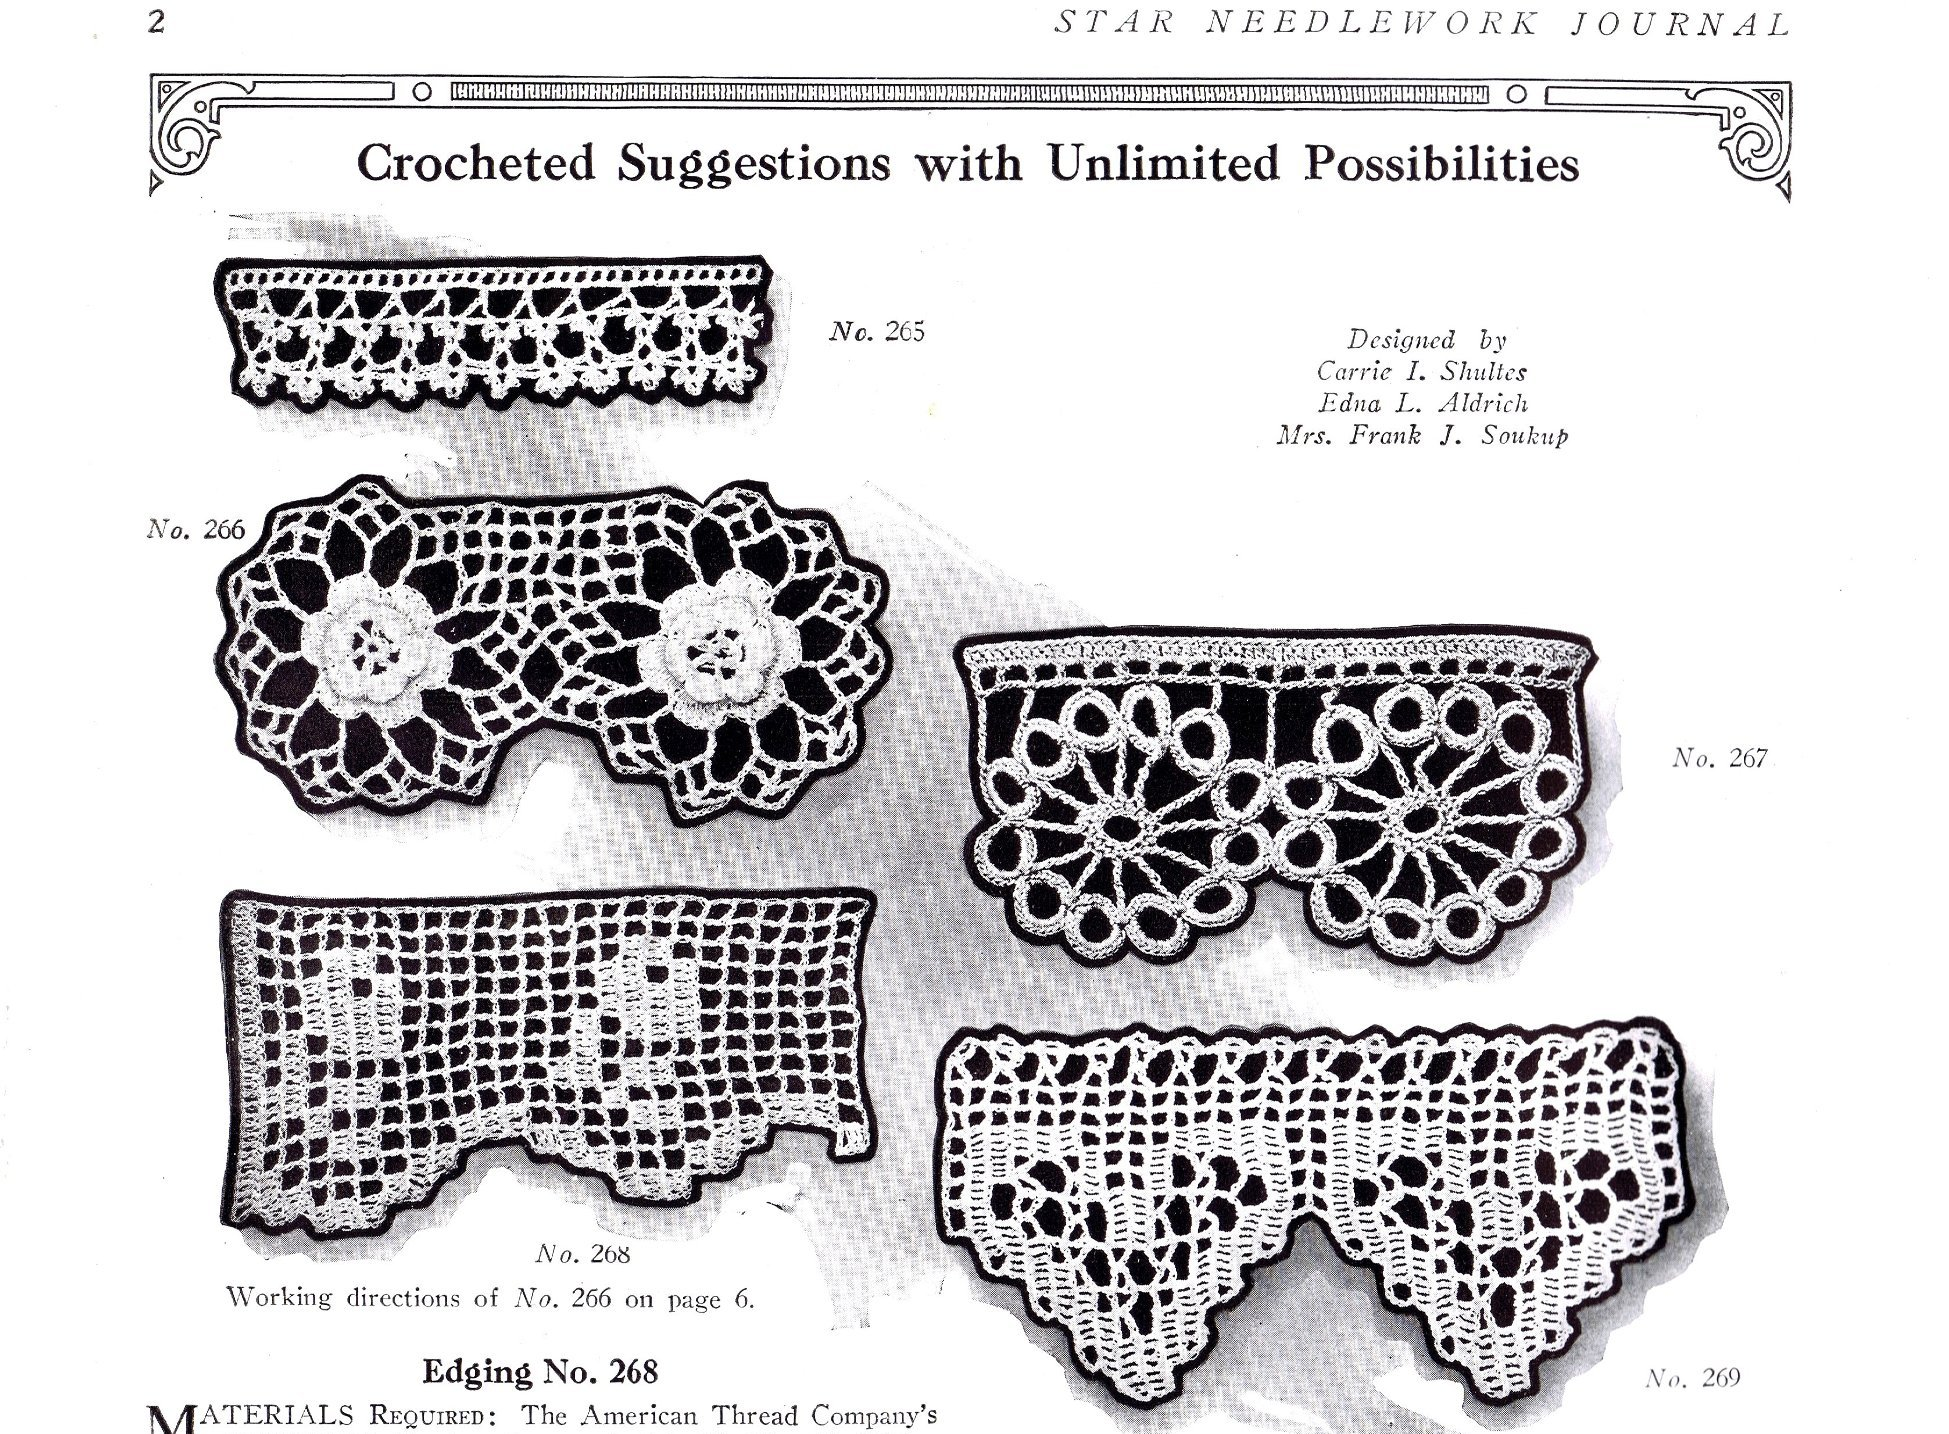 Free Vintage Crochet Edging Pattern : Free Vintage Crochet and Knitted Pattern Suggestions With ...